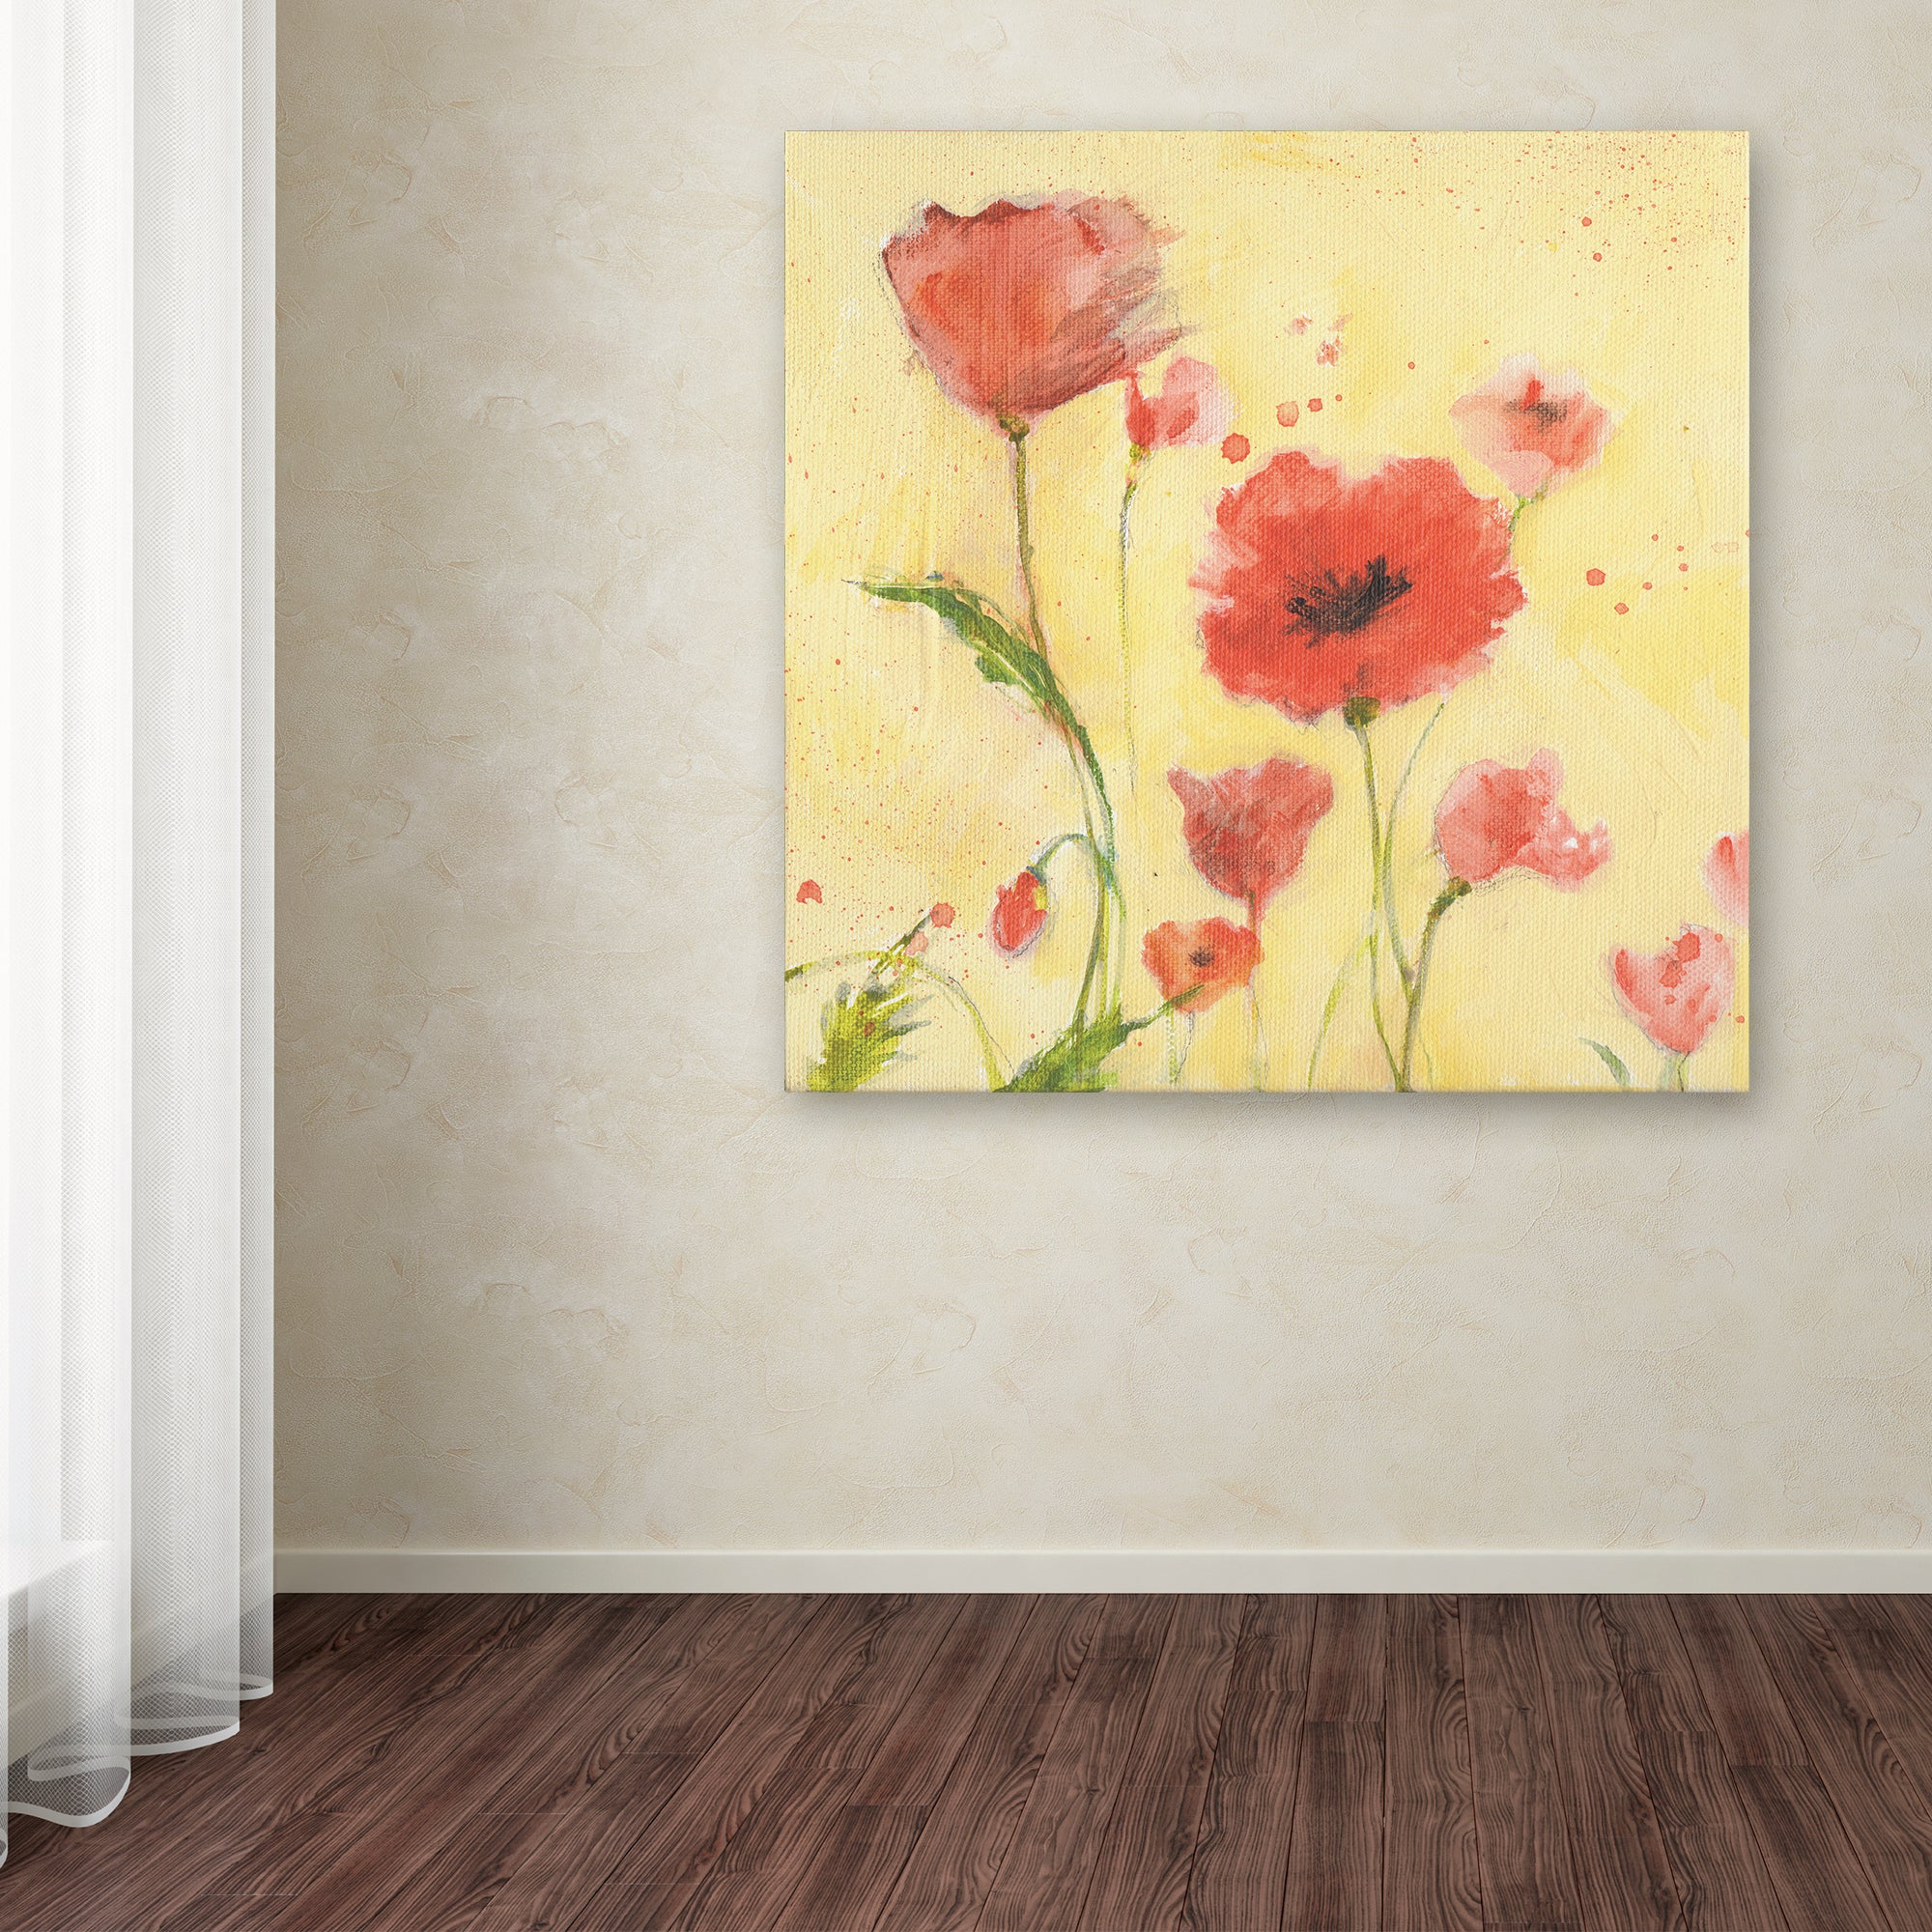 Amazing Wall Art Poppies Images - The Wall Art Decorations ...